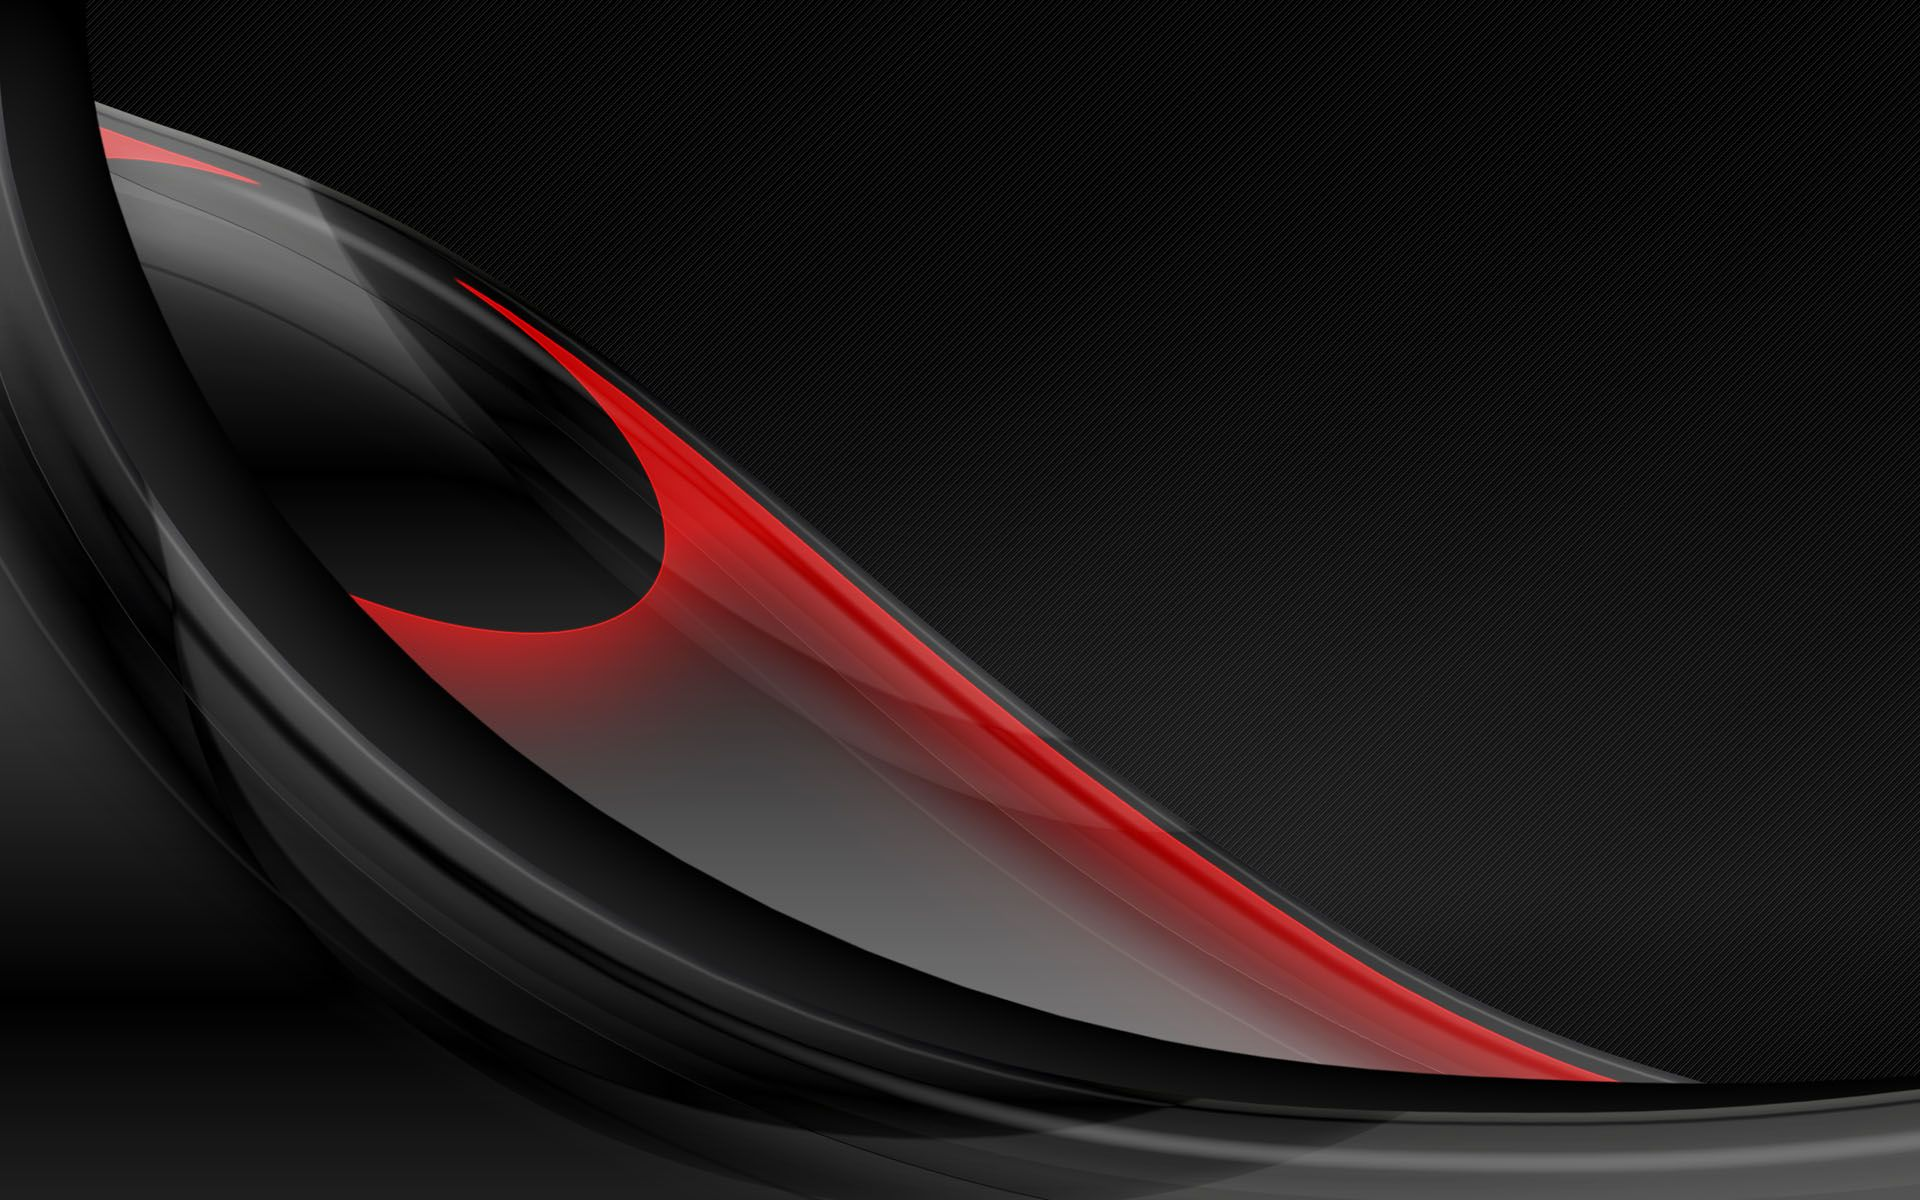 Abstract Hd Black And Red Wallpapers